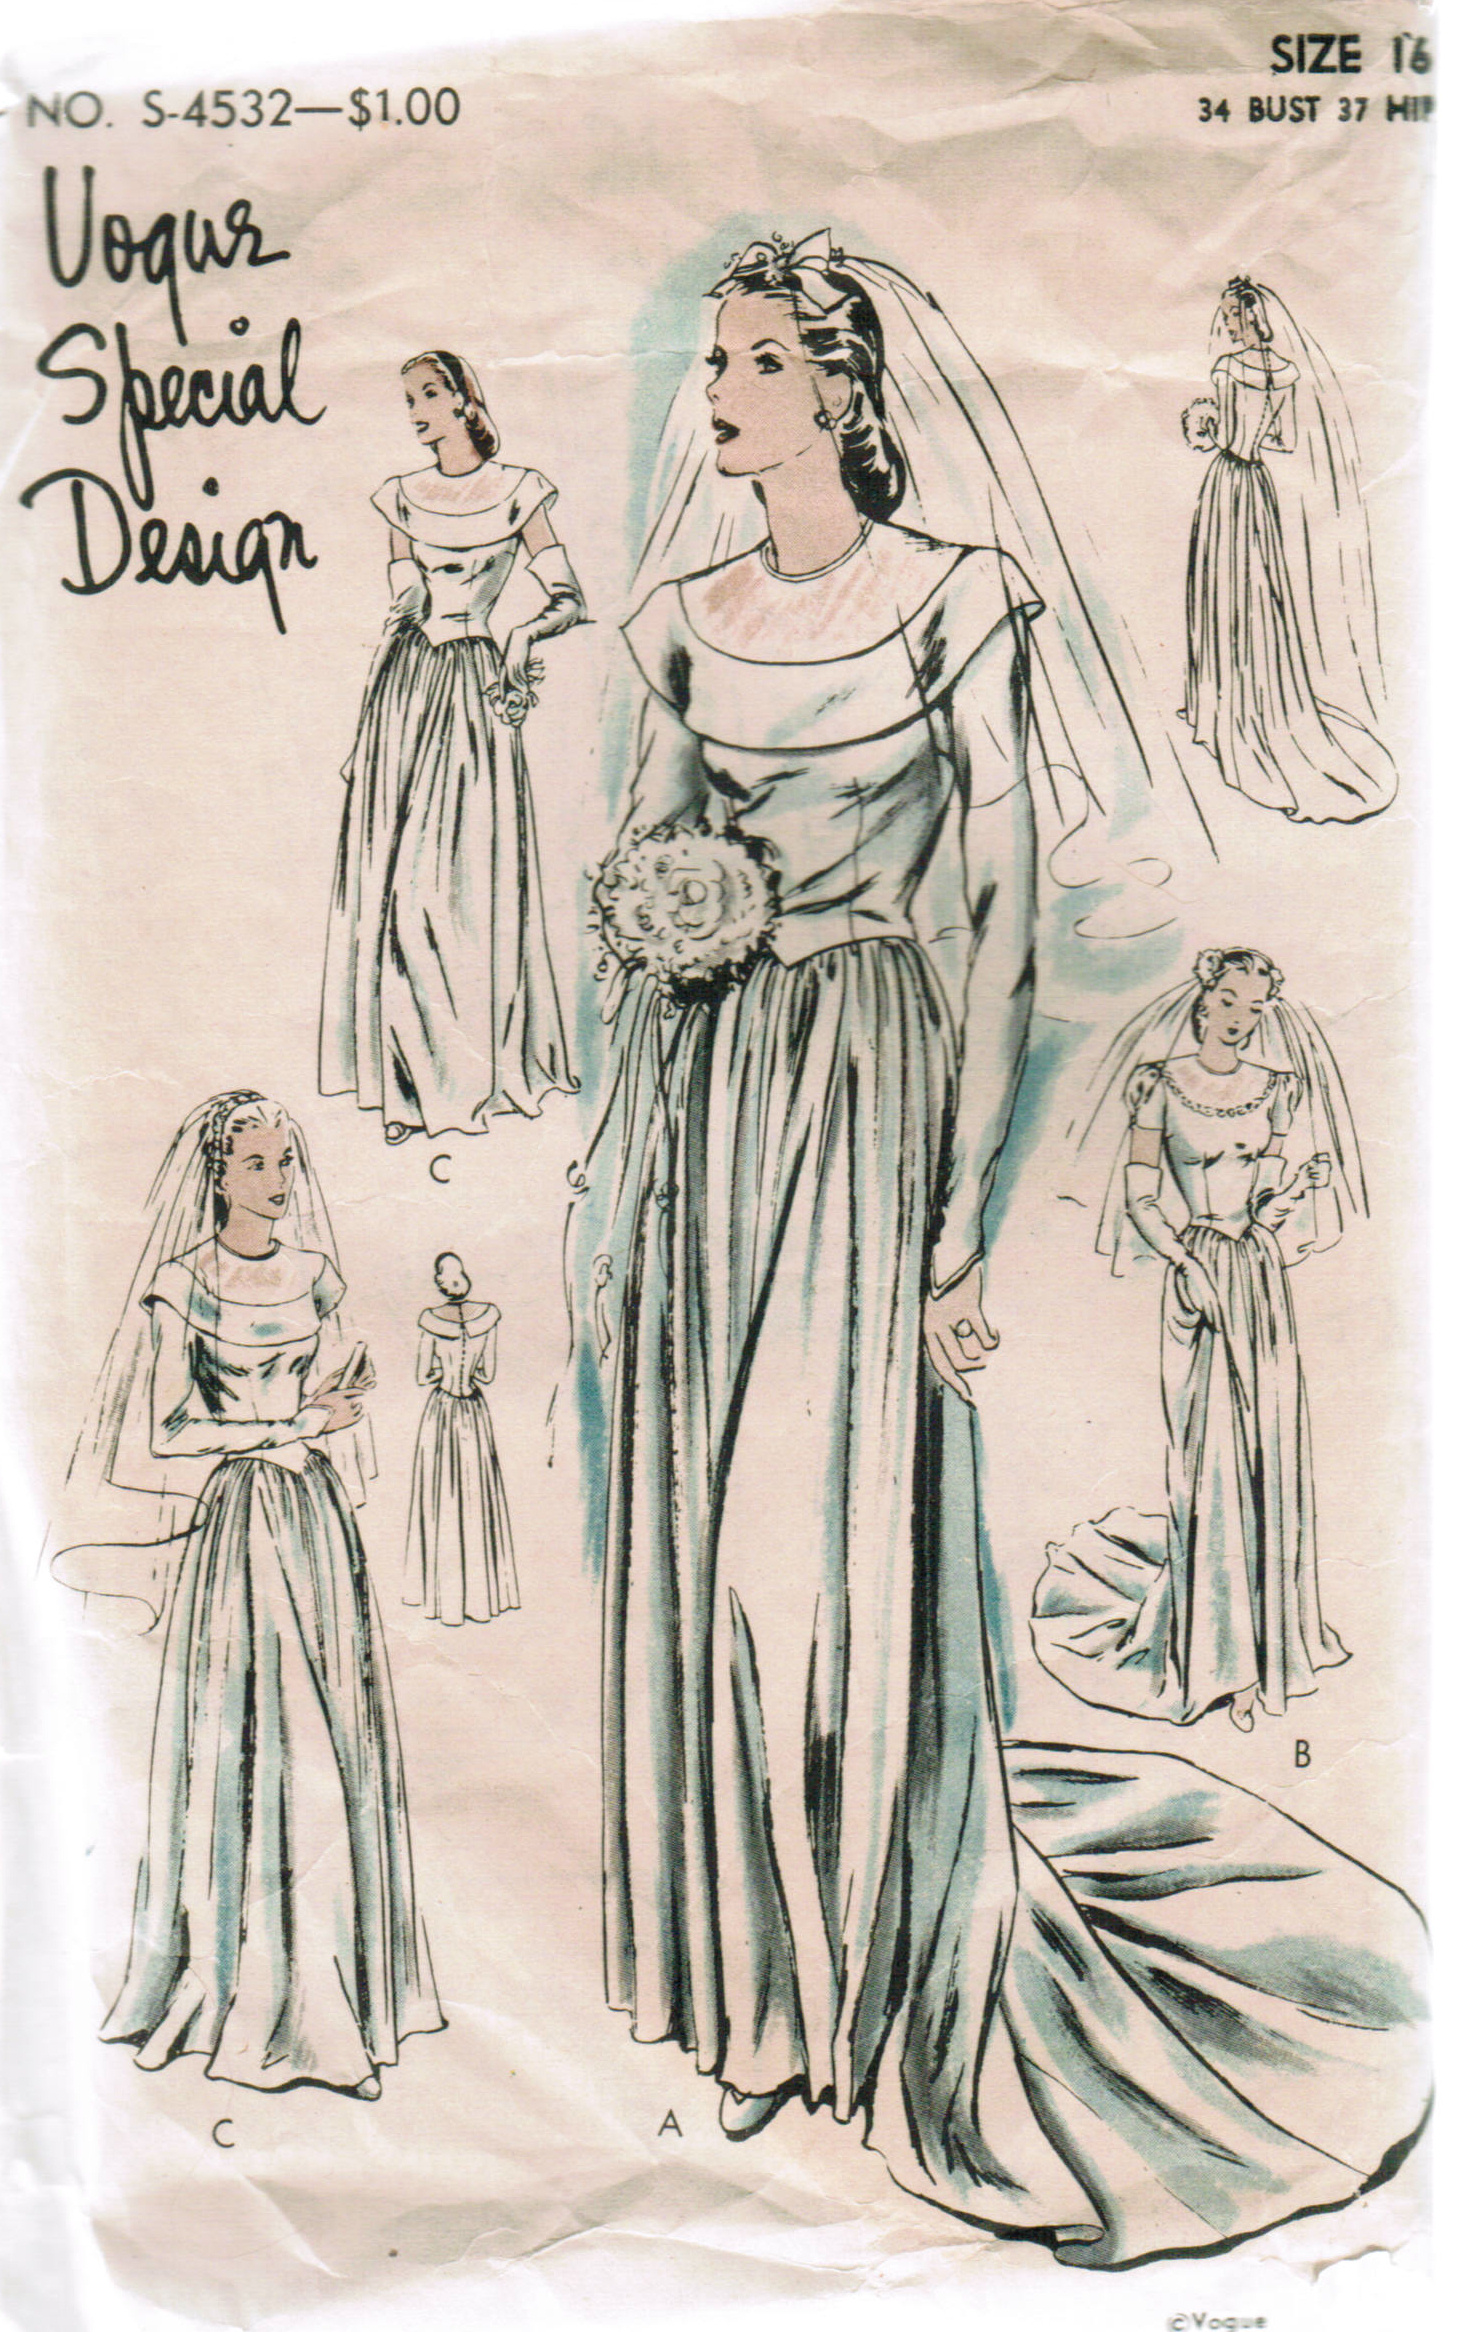 1940s Vogue Special Design wartime bridal pattern S-4532